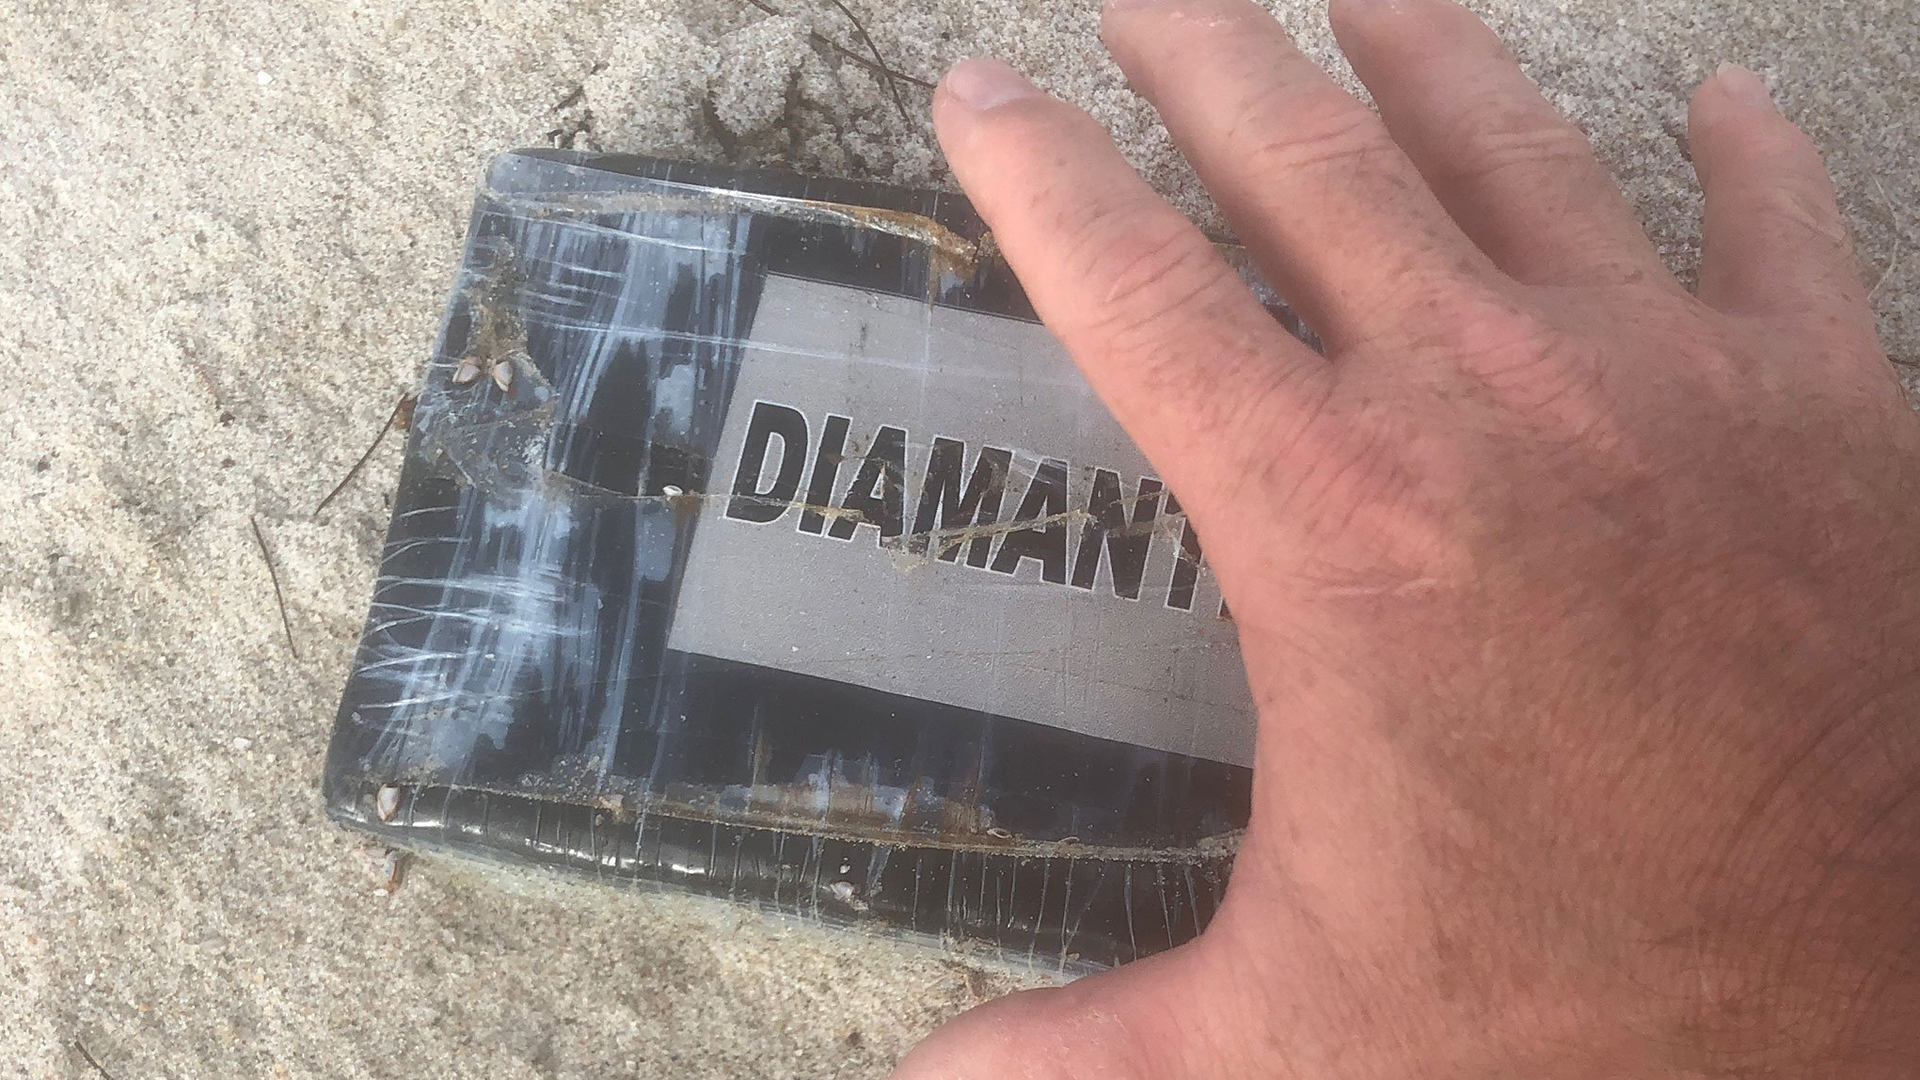 A kilogram of cocaine washed up Tuesday at Florida's Paradise Beach Park. (Credit: Melbourne Police Department)